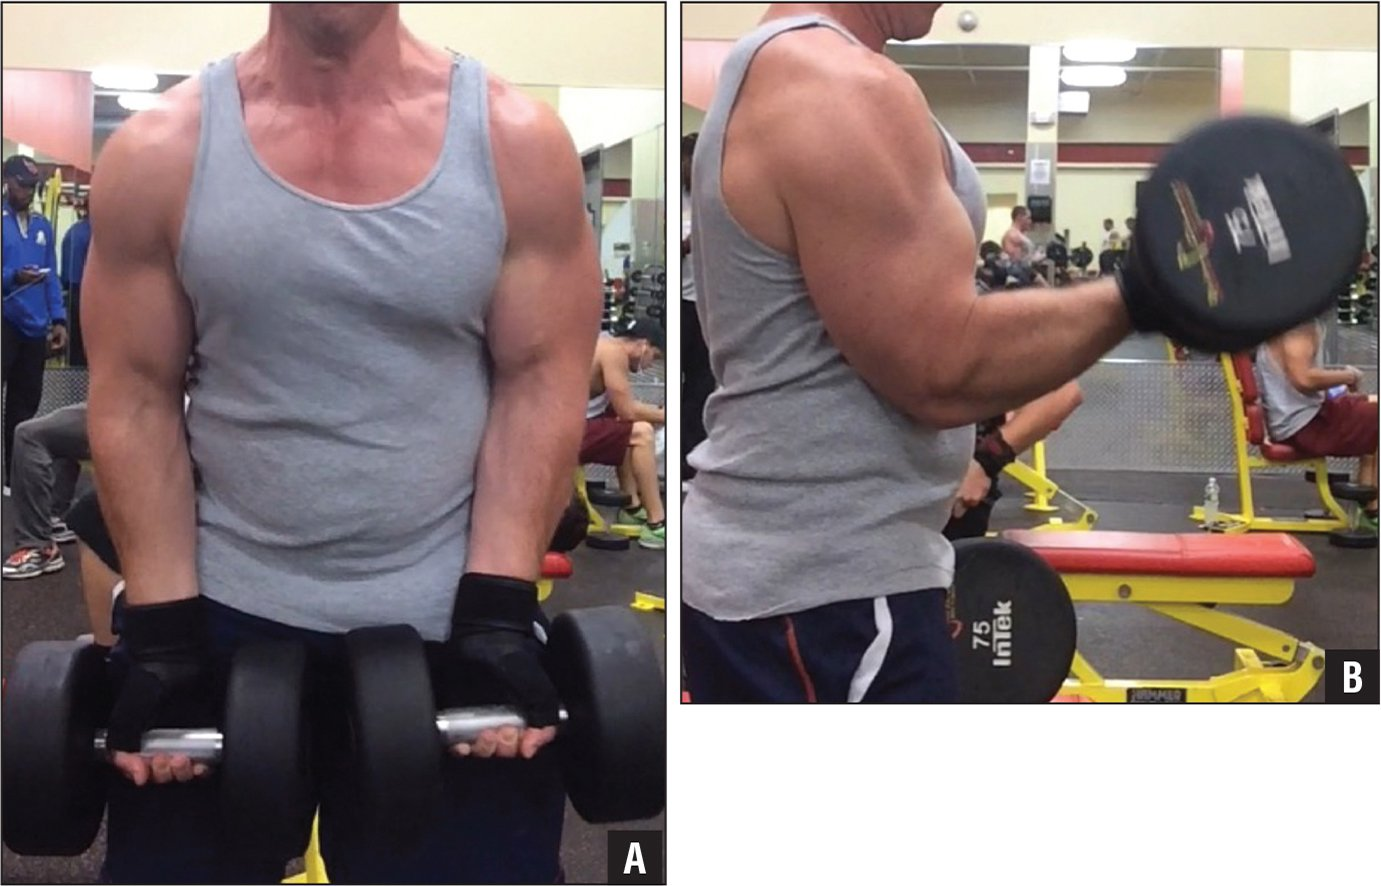 Clinical photograph 18 months after the injury showing normal symmetrical contour of both arms (A). The patient was able to return to the pre-injury weightlifting regimen of 40.8- to 45.4-kg biceps curls (B).